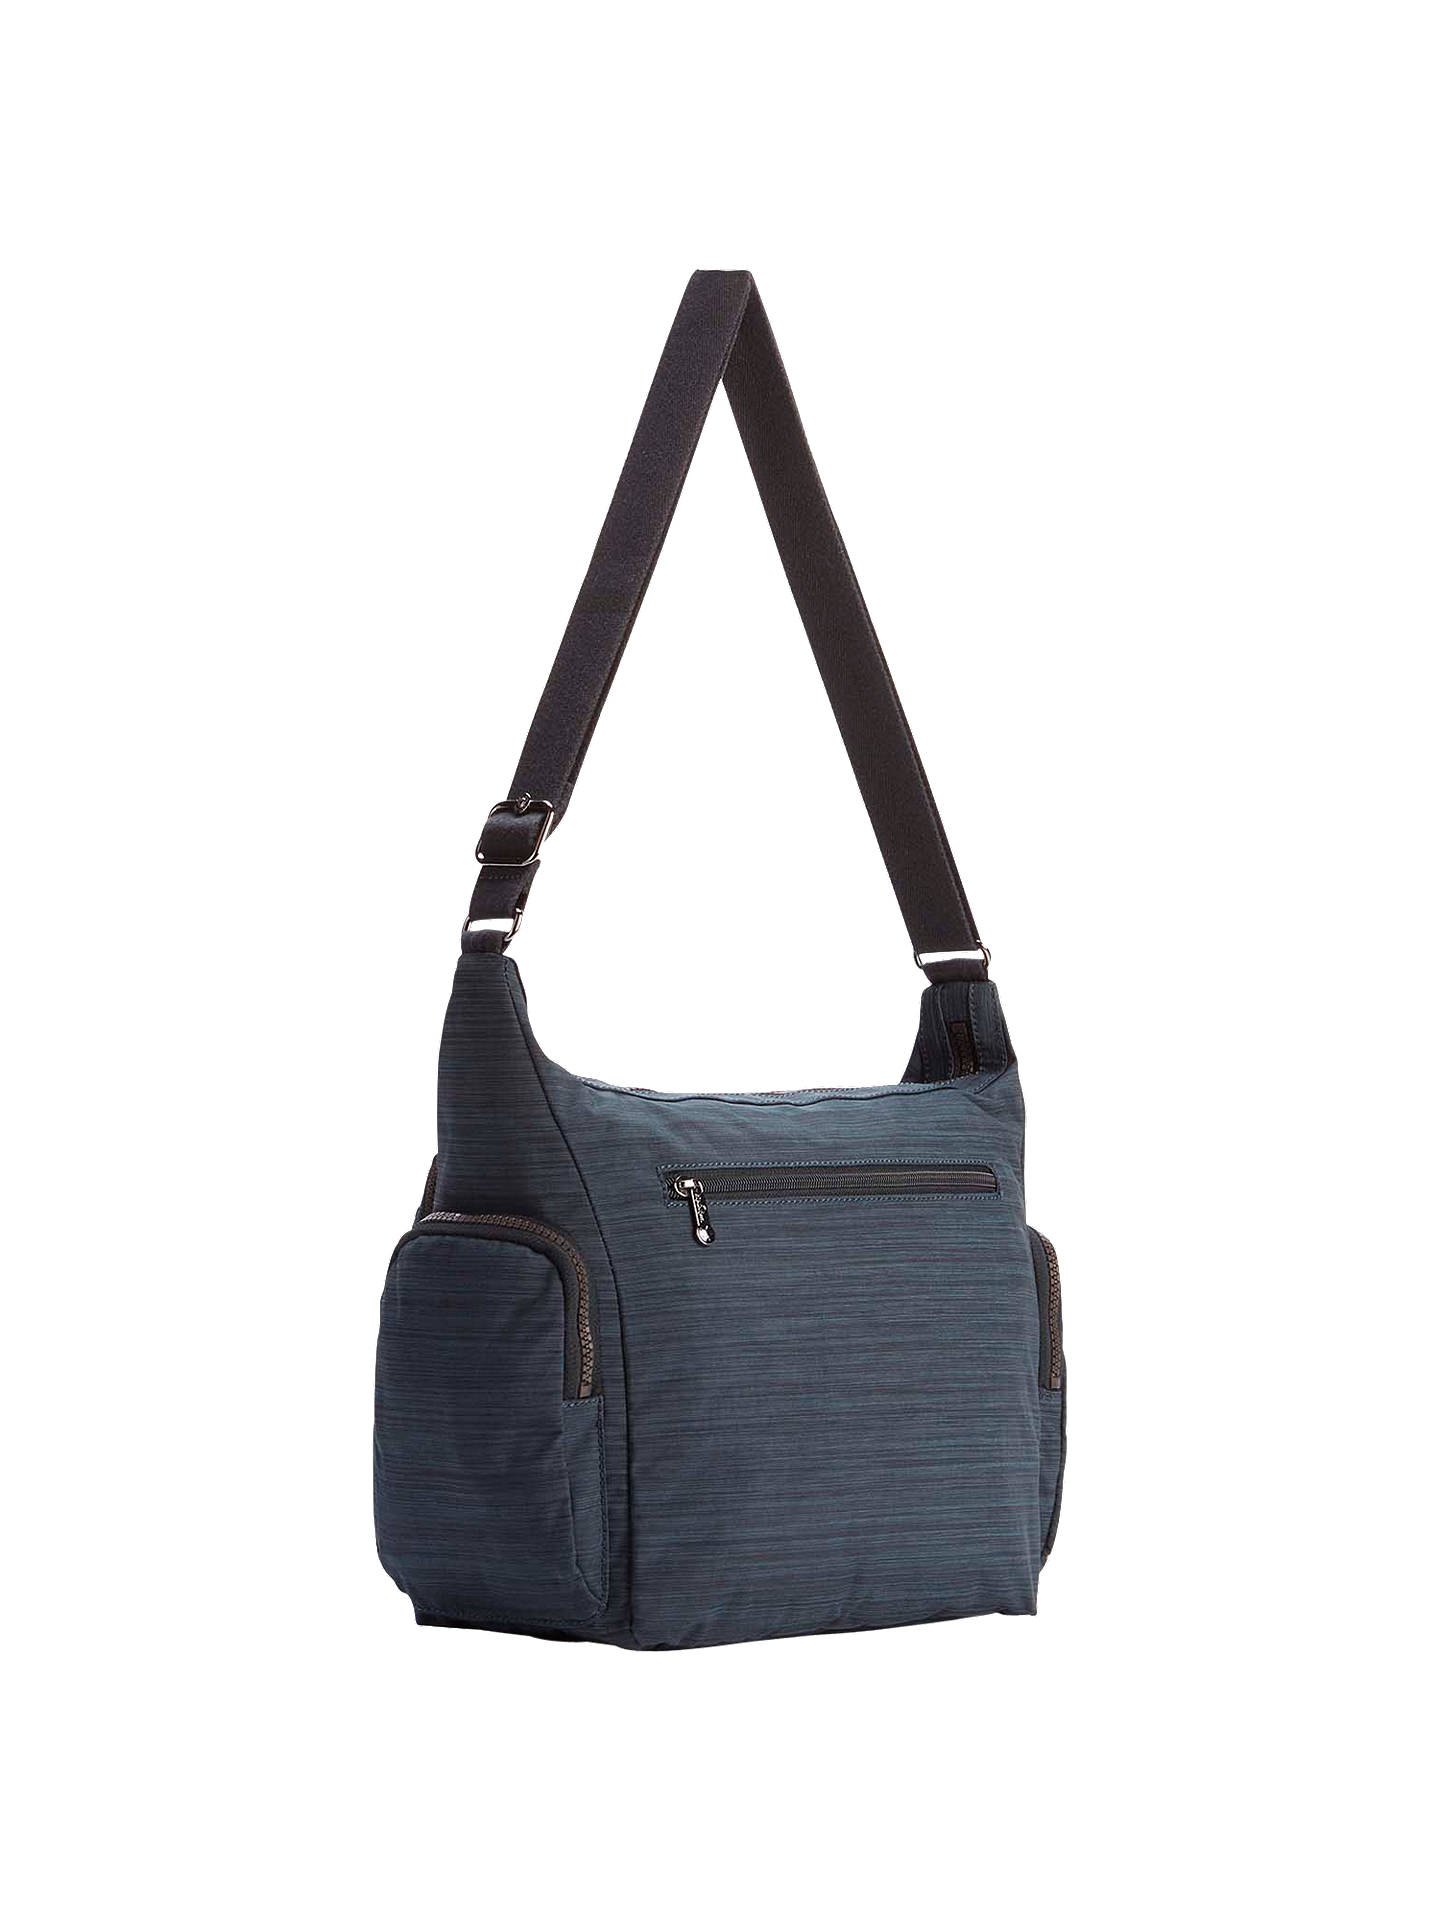 955965509dfa Kipling Gabbie Medium Cross Body Bag at John Lewis   Partners